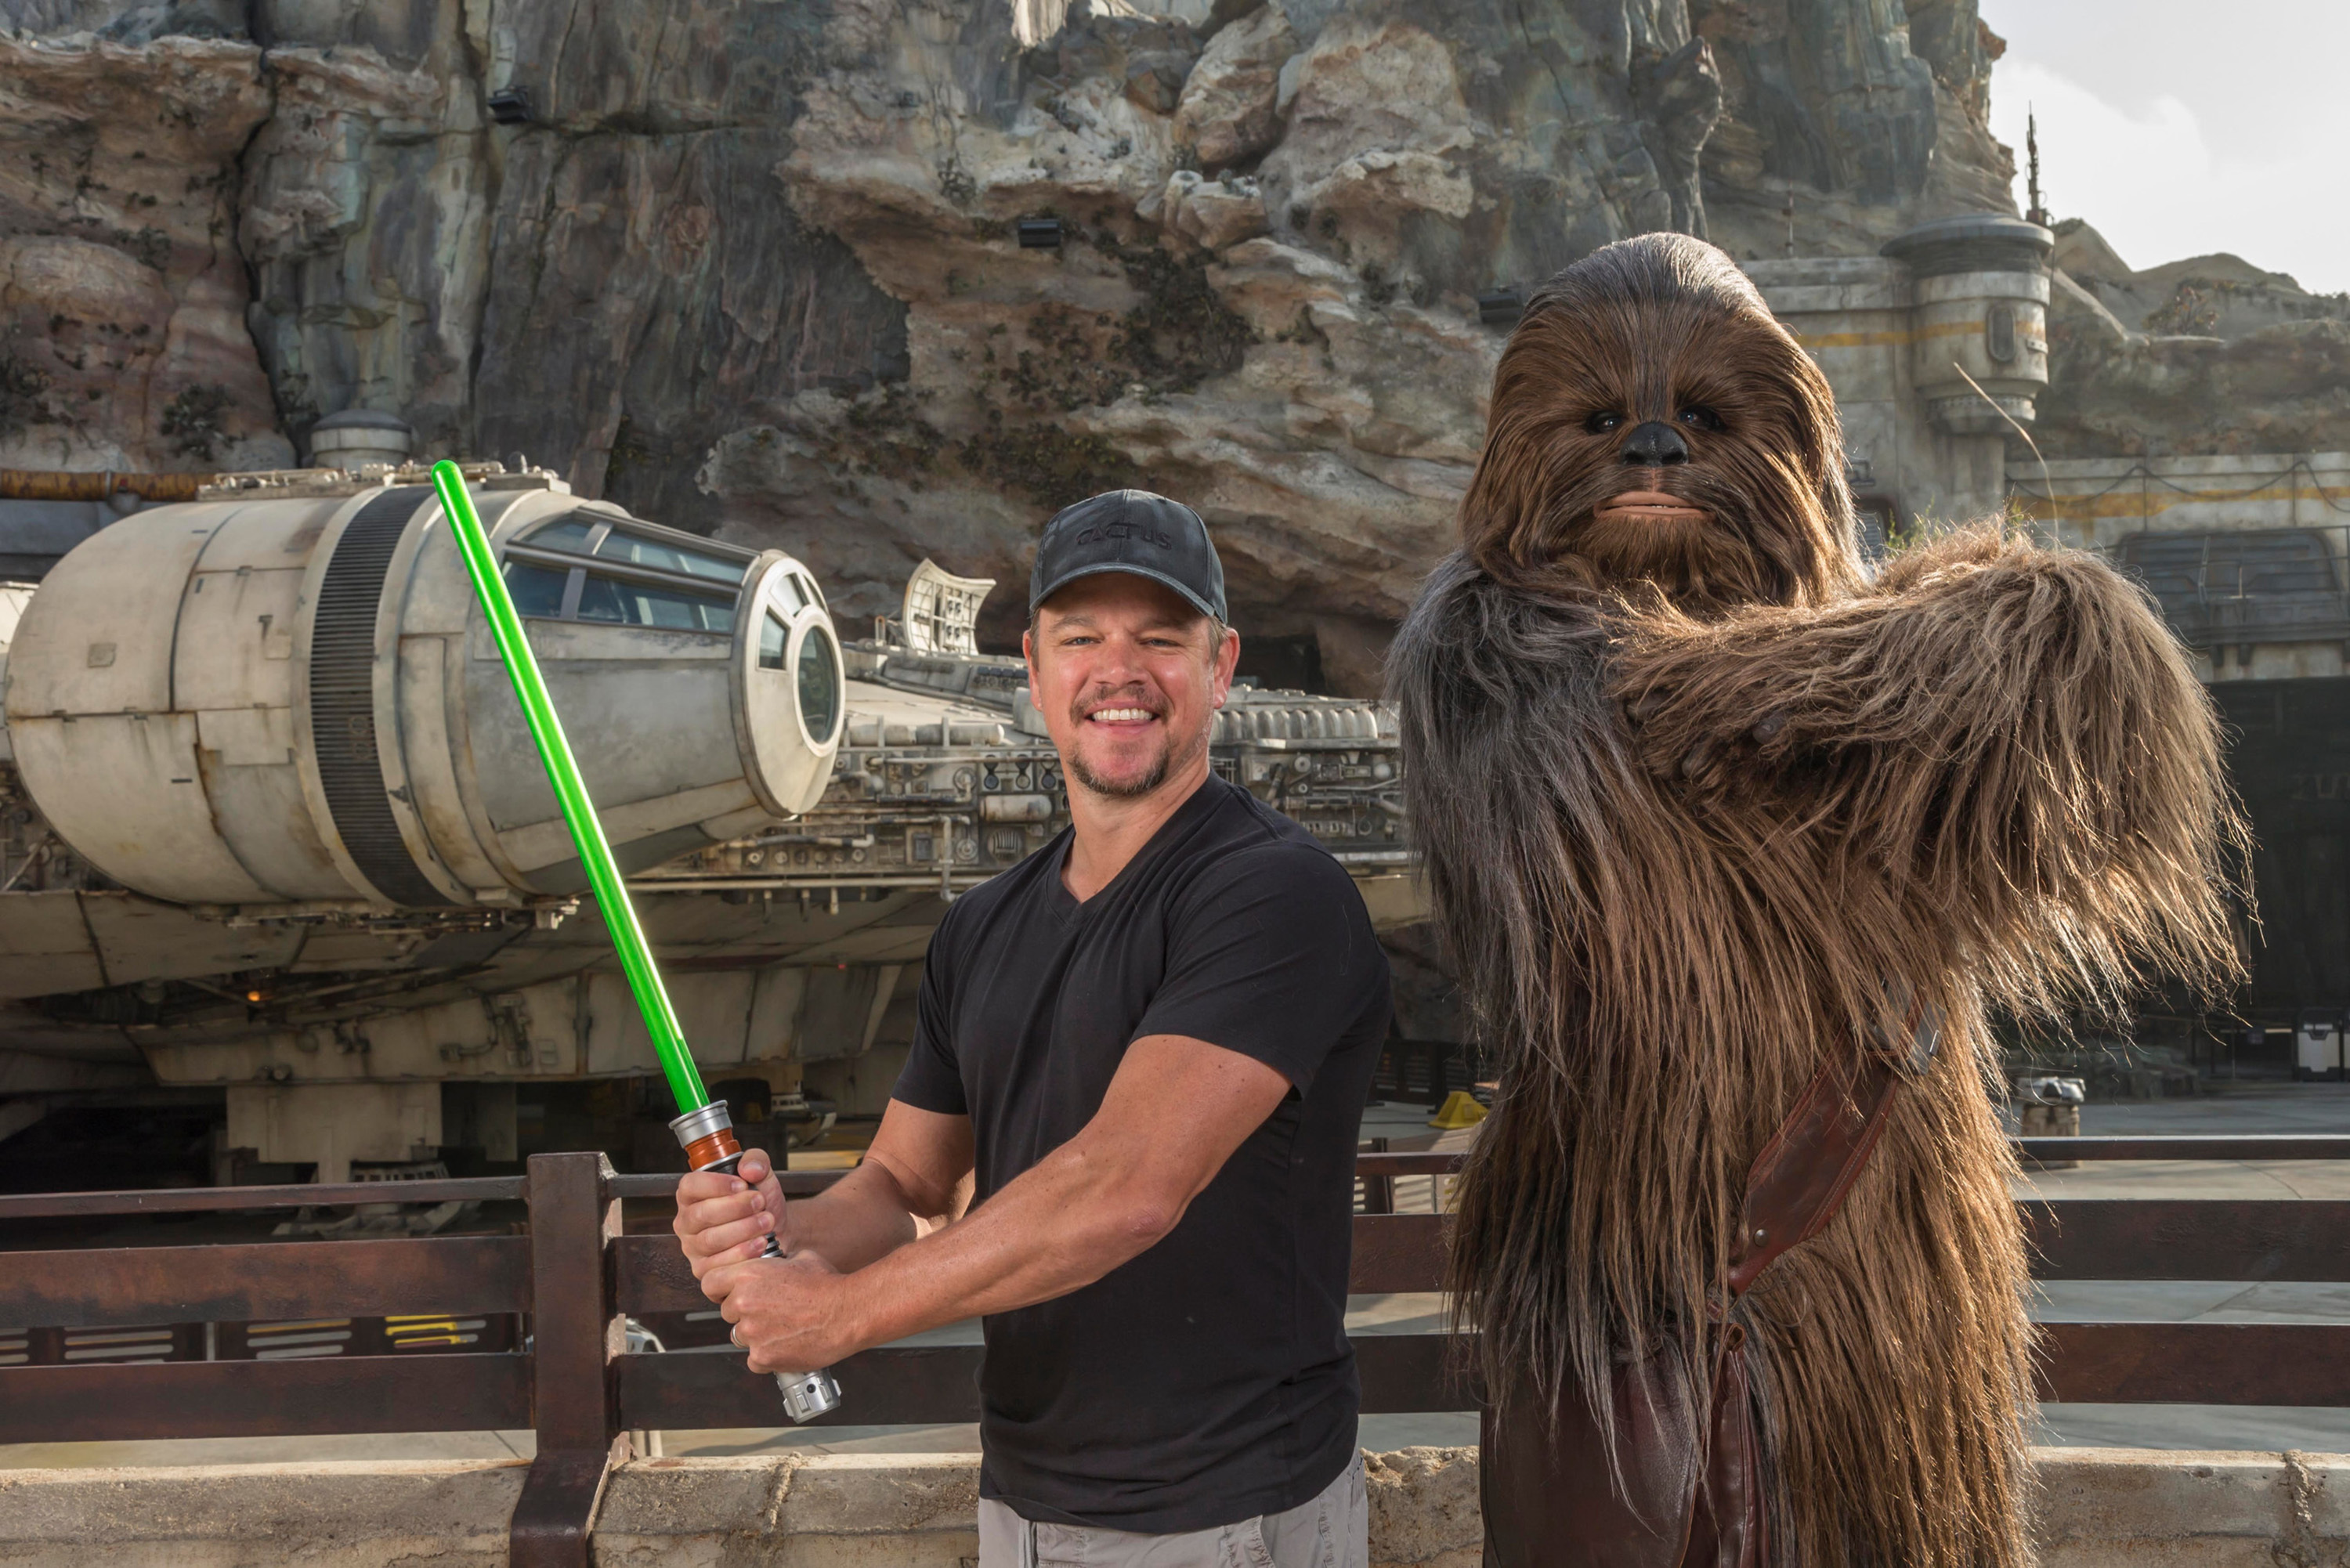 Matt Damon encounters Chewbacca in front of Millennium Falcon: Smugglers Run attraction at the new Star Wars: Galaxy's Edge land at Disneyland in Anaheim, California, on Aug. 5, 2019.